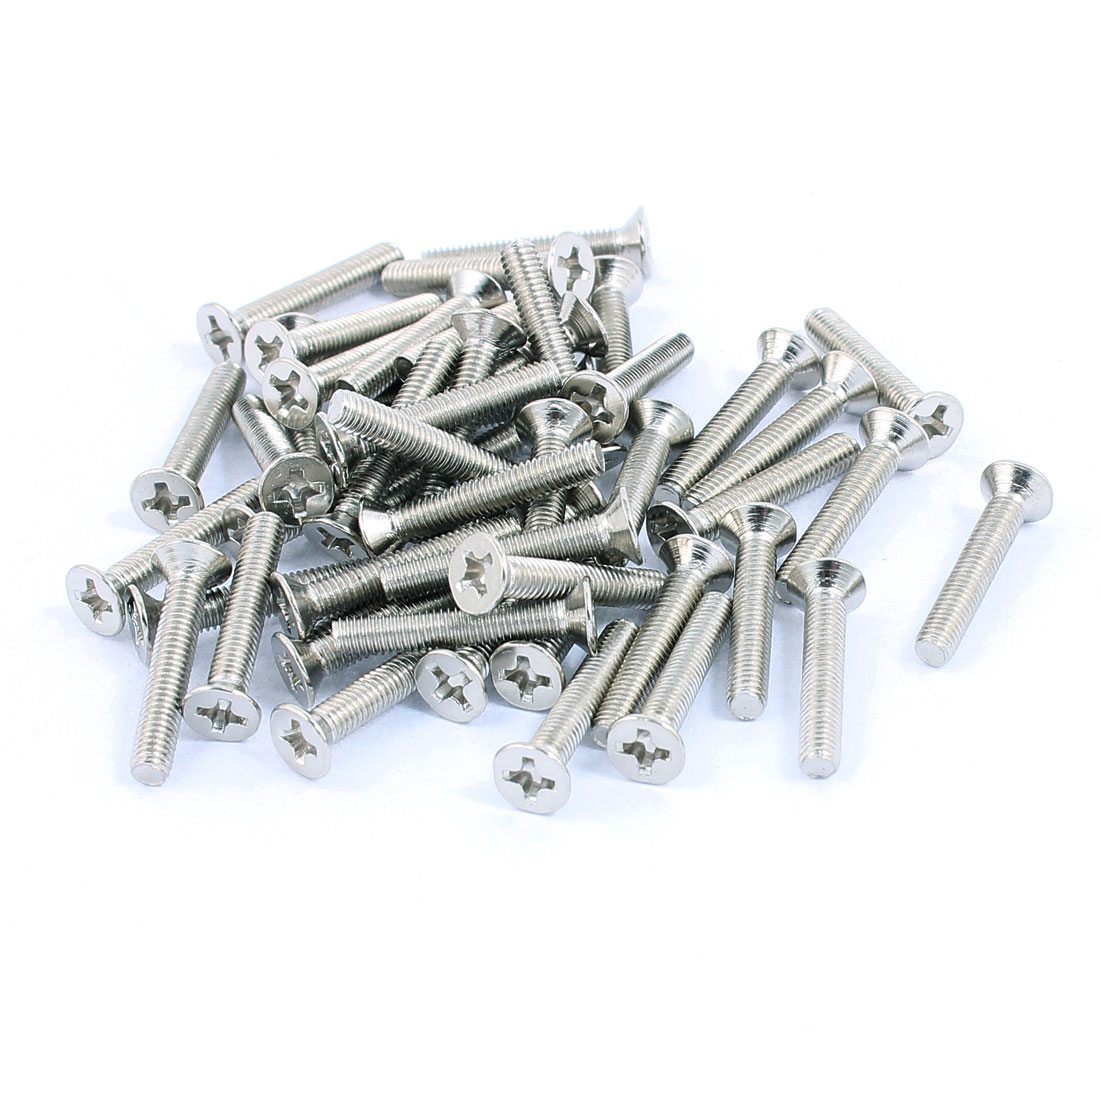 M3x18mm Stainless Steel Phillips Flat Head Countersunk Machine Screws Bolts 50pcs